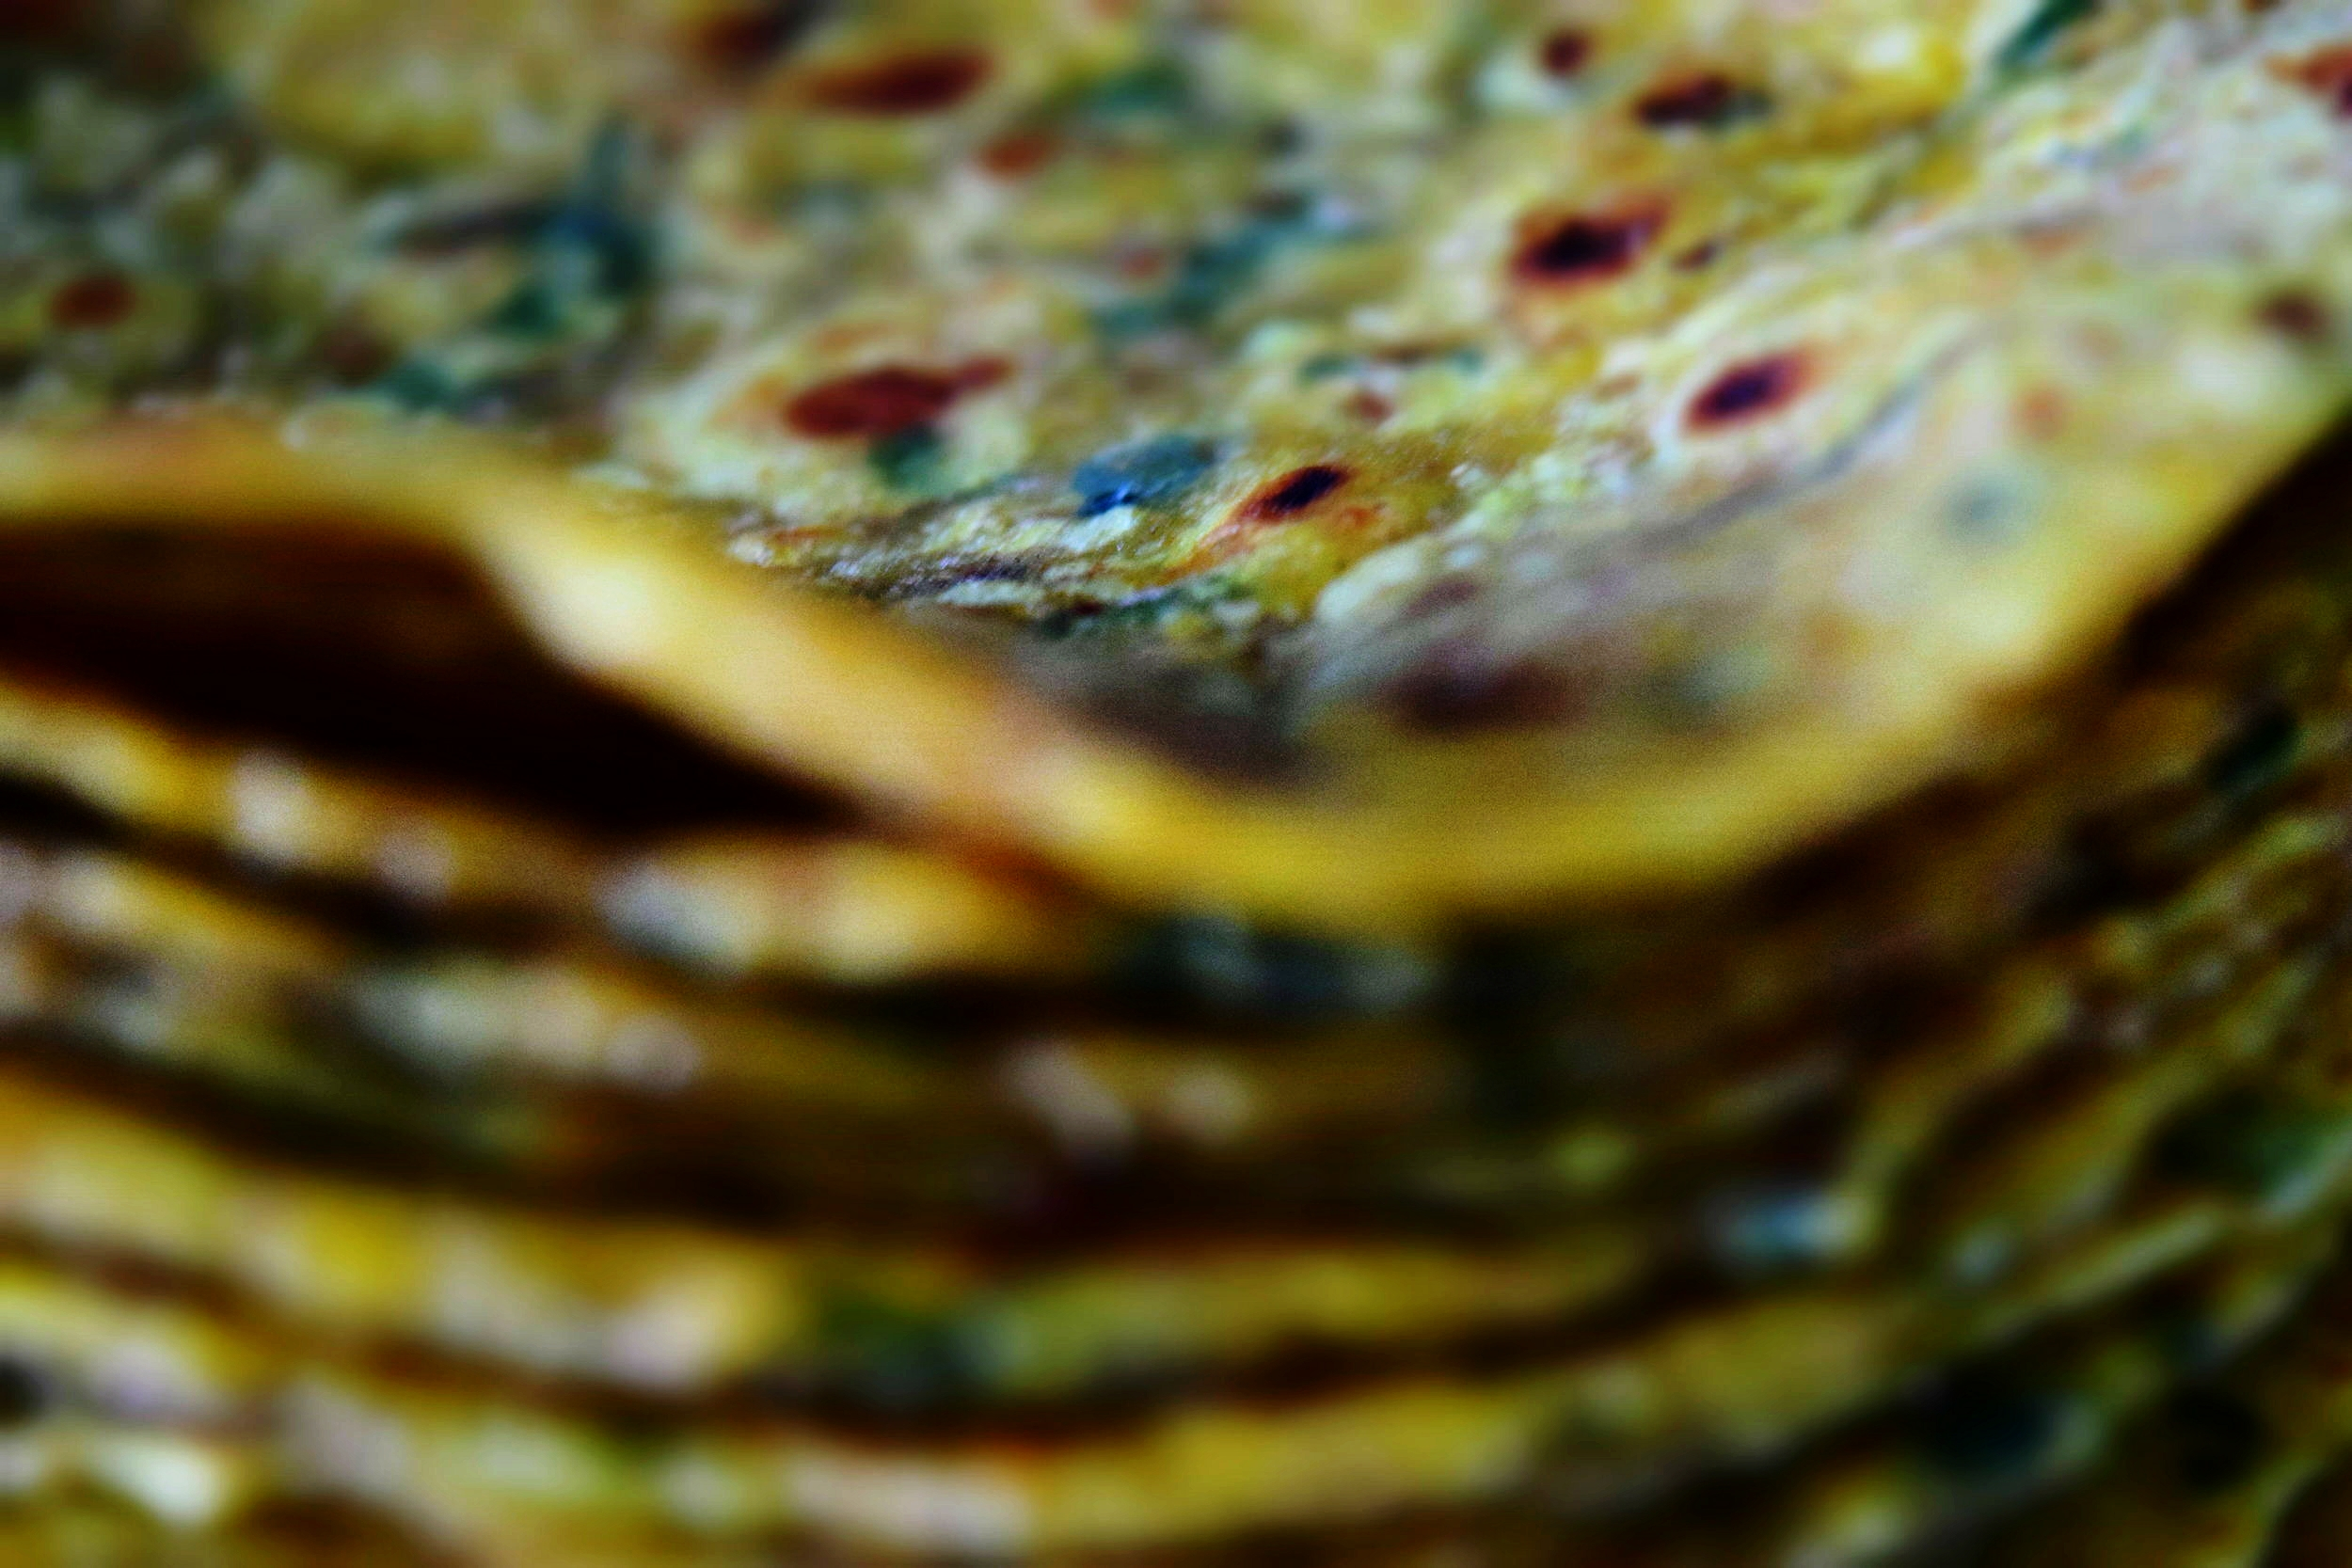 Bitesize Paratha Class£15 - Learn how to make these lightly spiced flatbreadsDuration - up to 45minutes